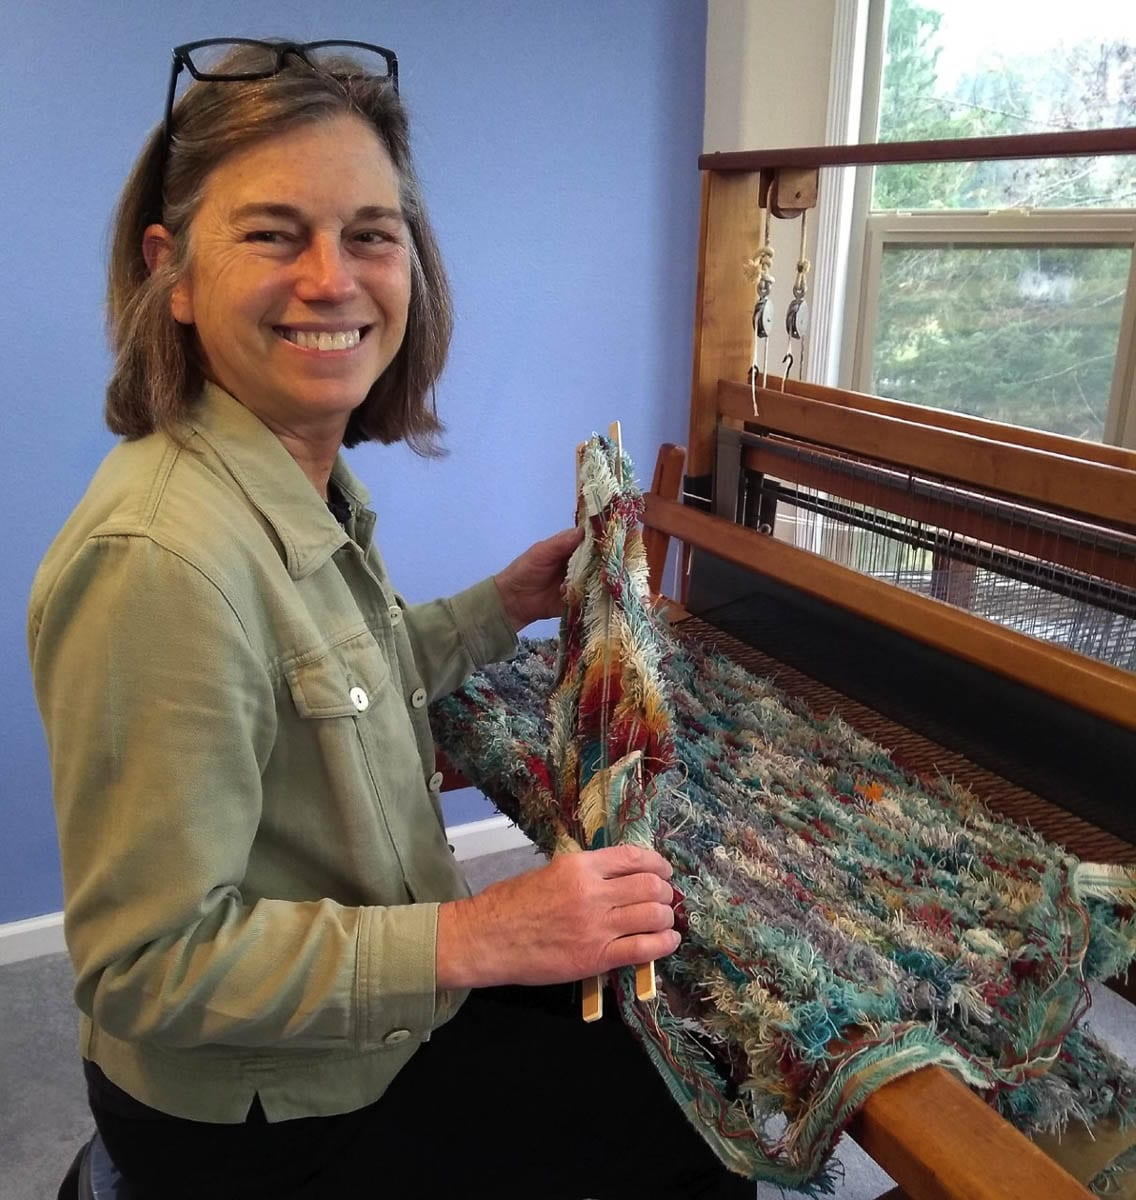 Kathy Marty of Windy Hills Weaving is excited to help get the word out about Artists Sunday. Photo courtesy Kathy Marty